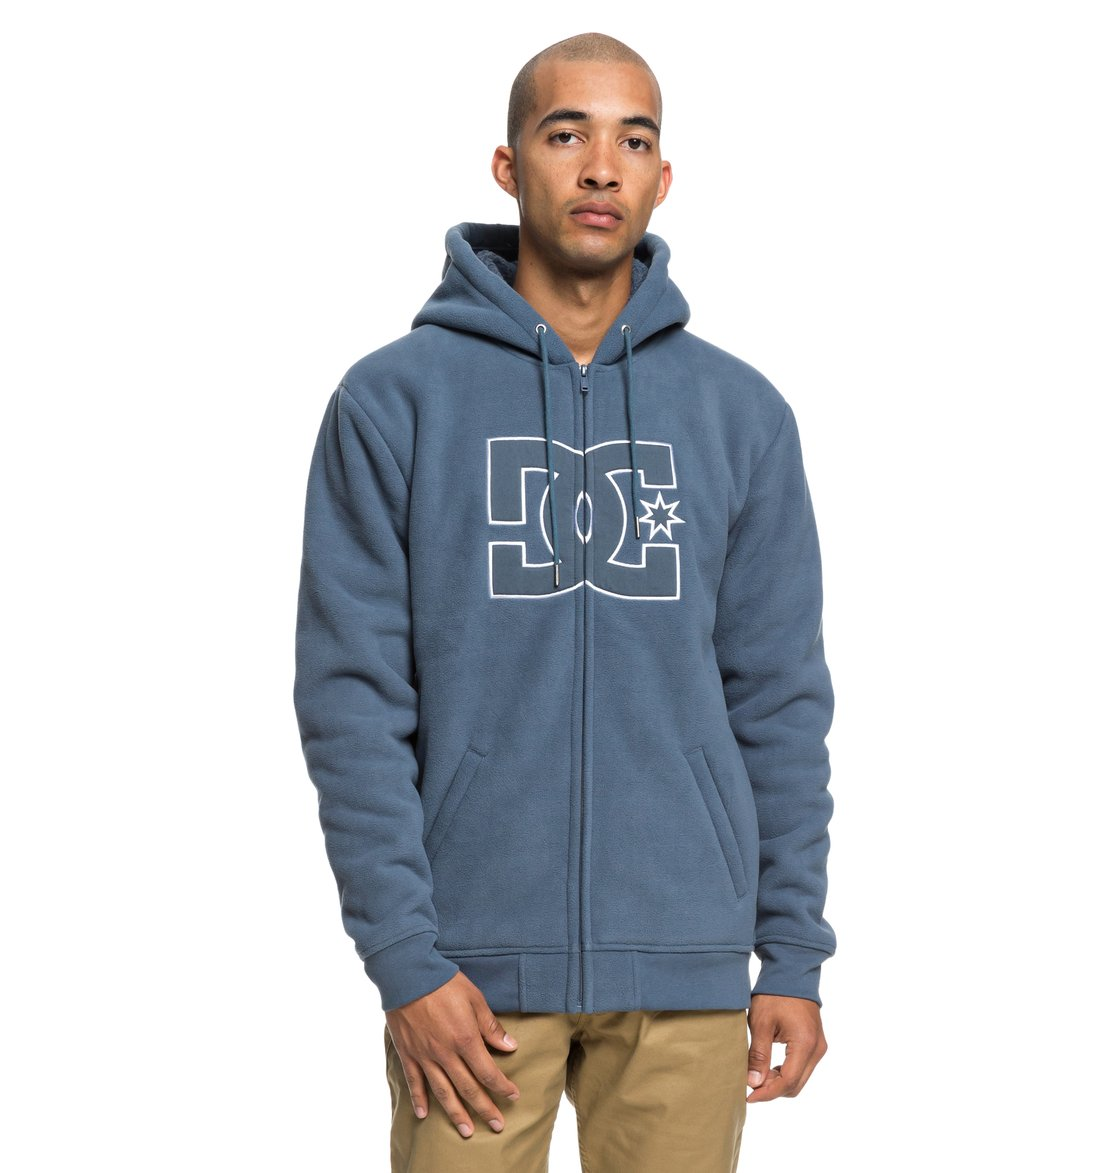 Pour Zippé Homme À Dc Shoes New Capuche Star Edyft03399 Sweat Sherpa qpg8q